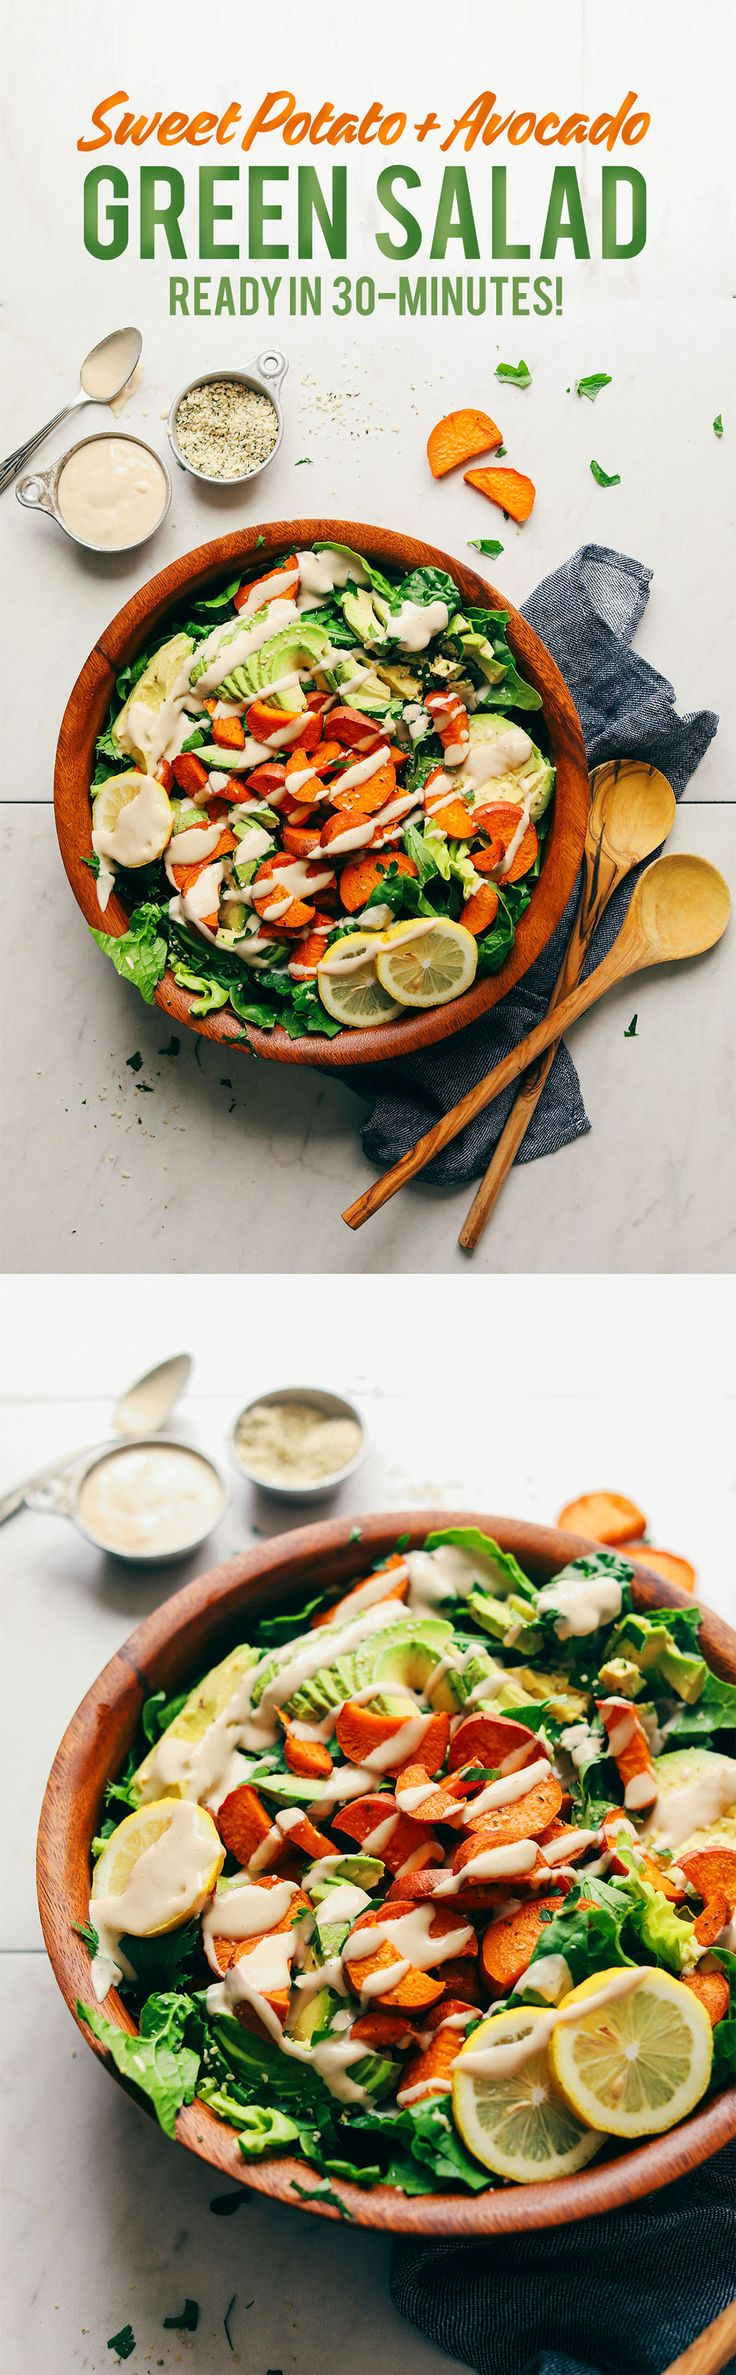 HEALTHY Green Salad with Sweet Potatoes, Avo, and Tahini Dressing! 30 min, 9 ing, SO delicious!